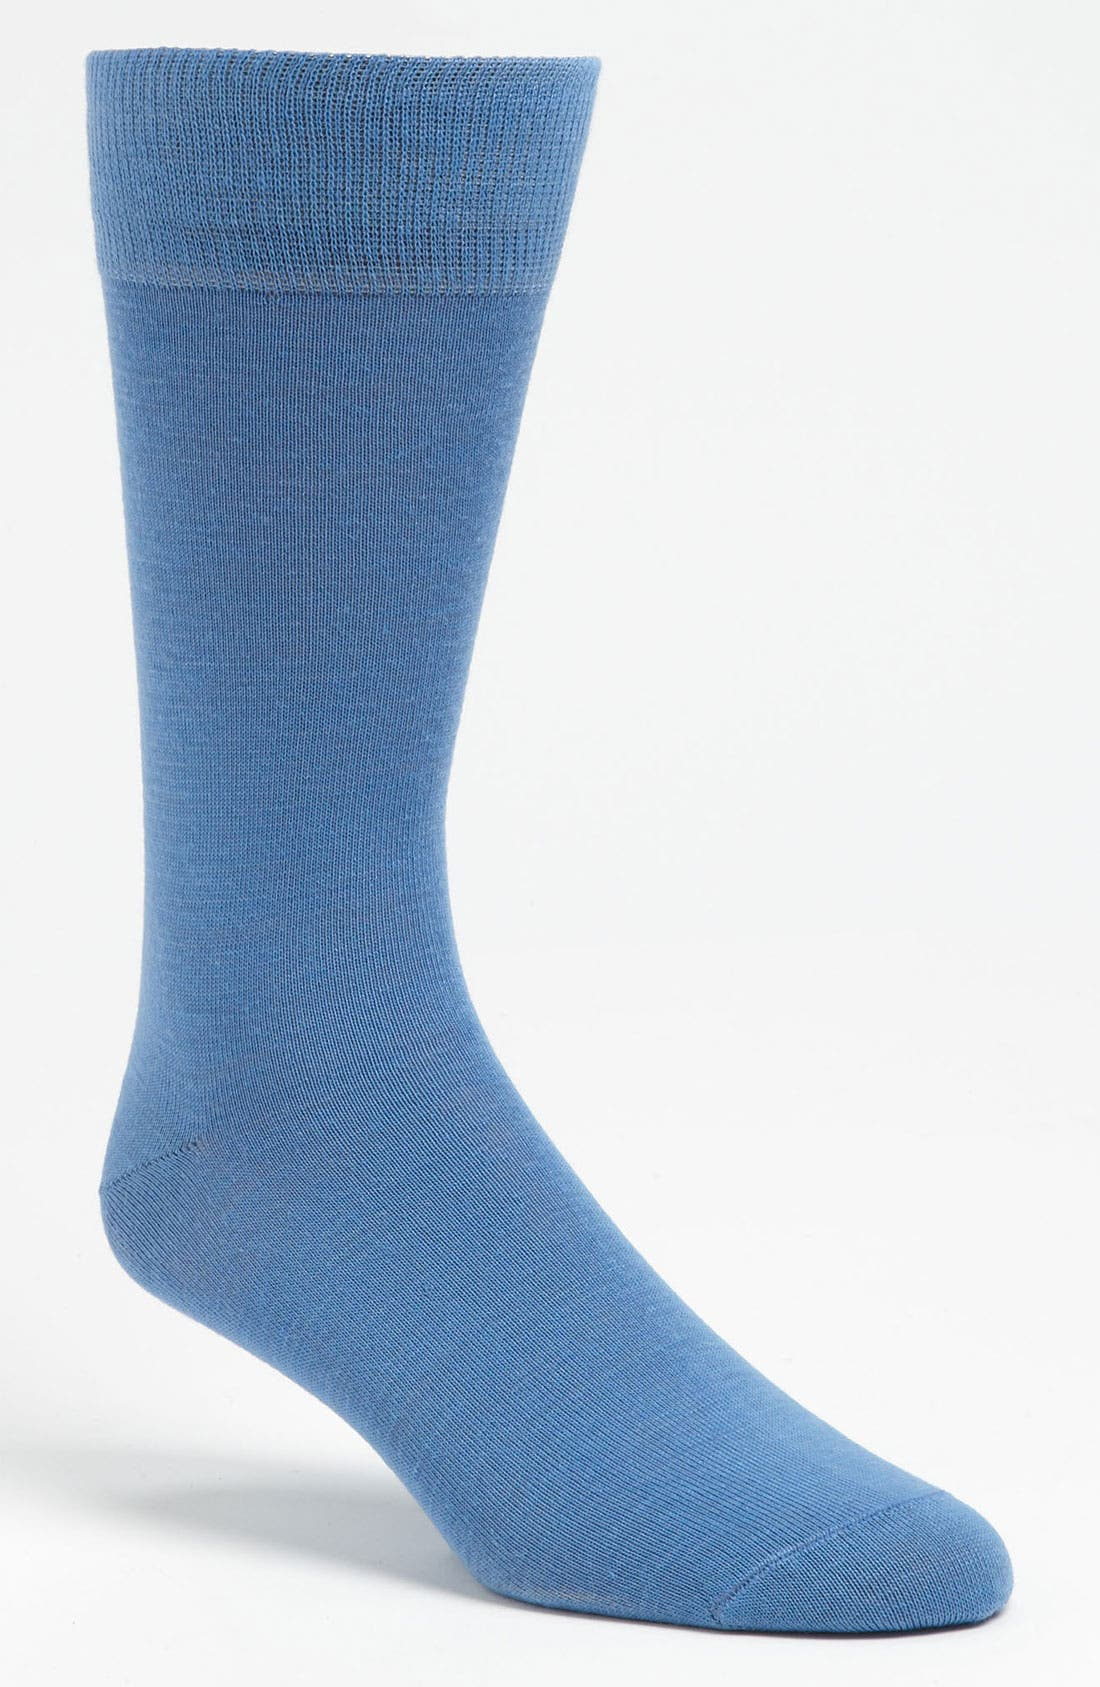 Lorenzo Uomo Merino Wool Blend Socks (3 for $30)